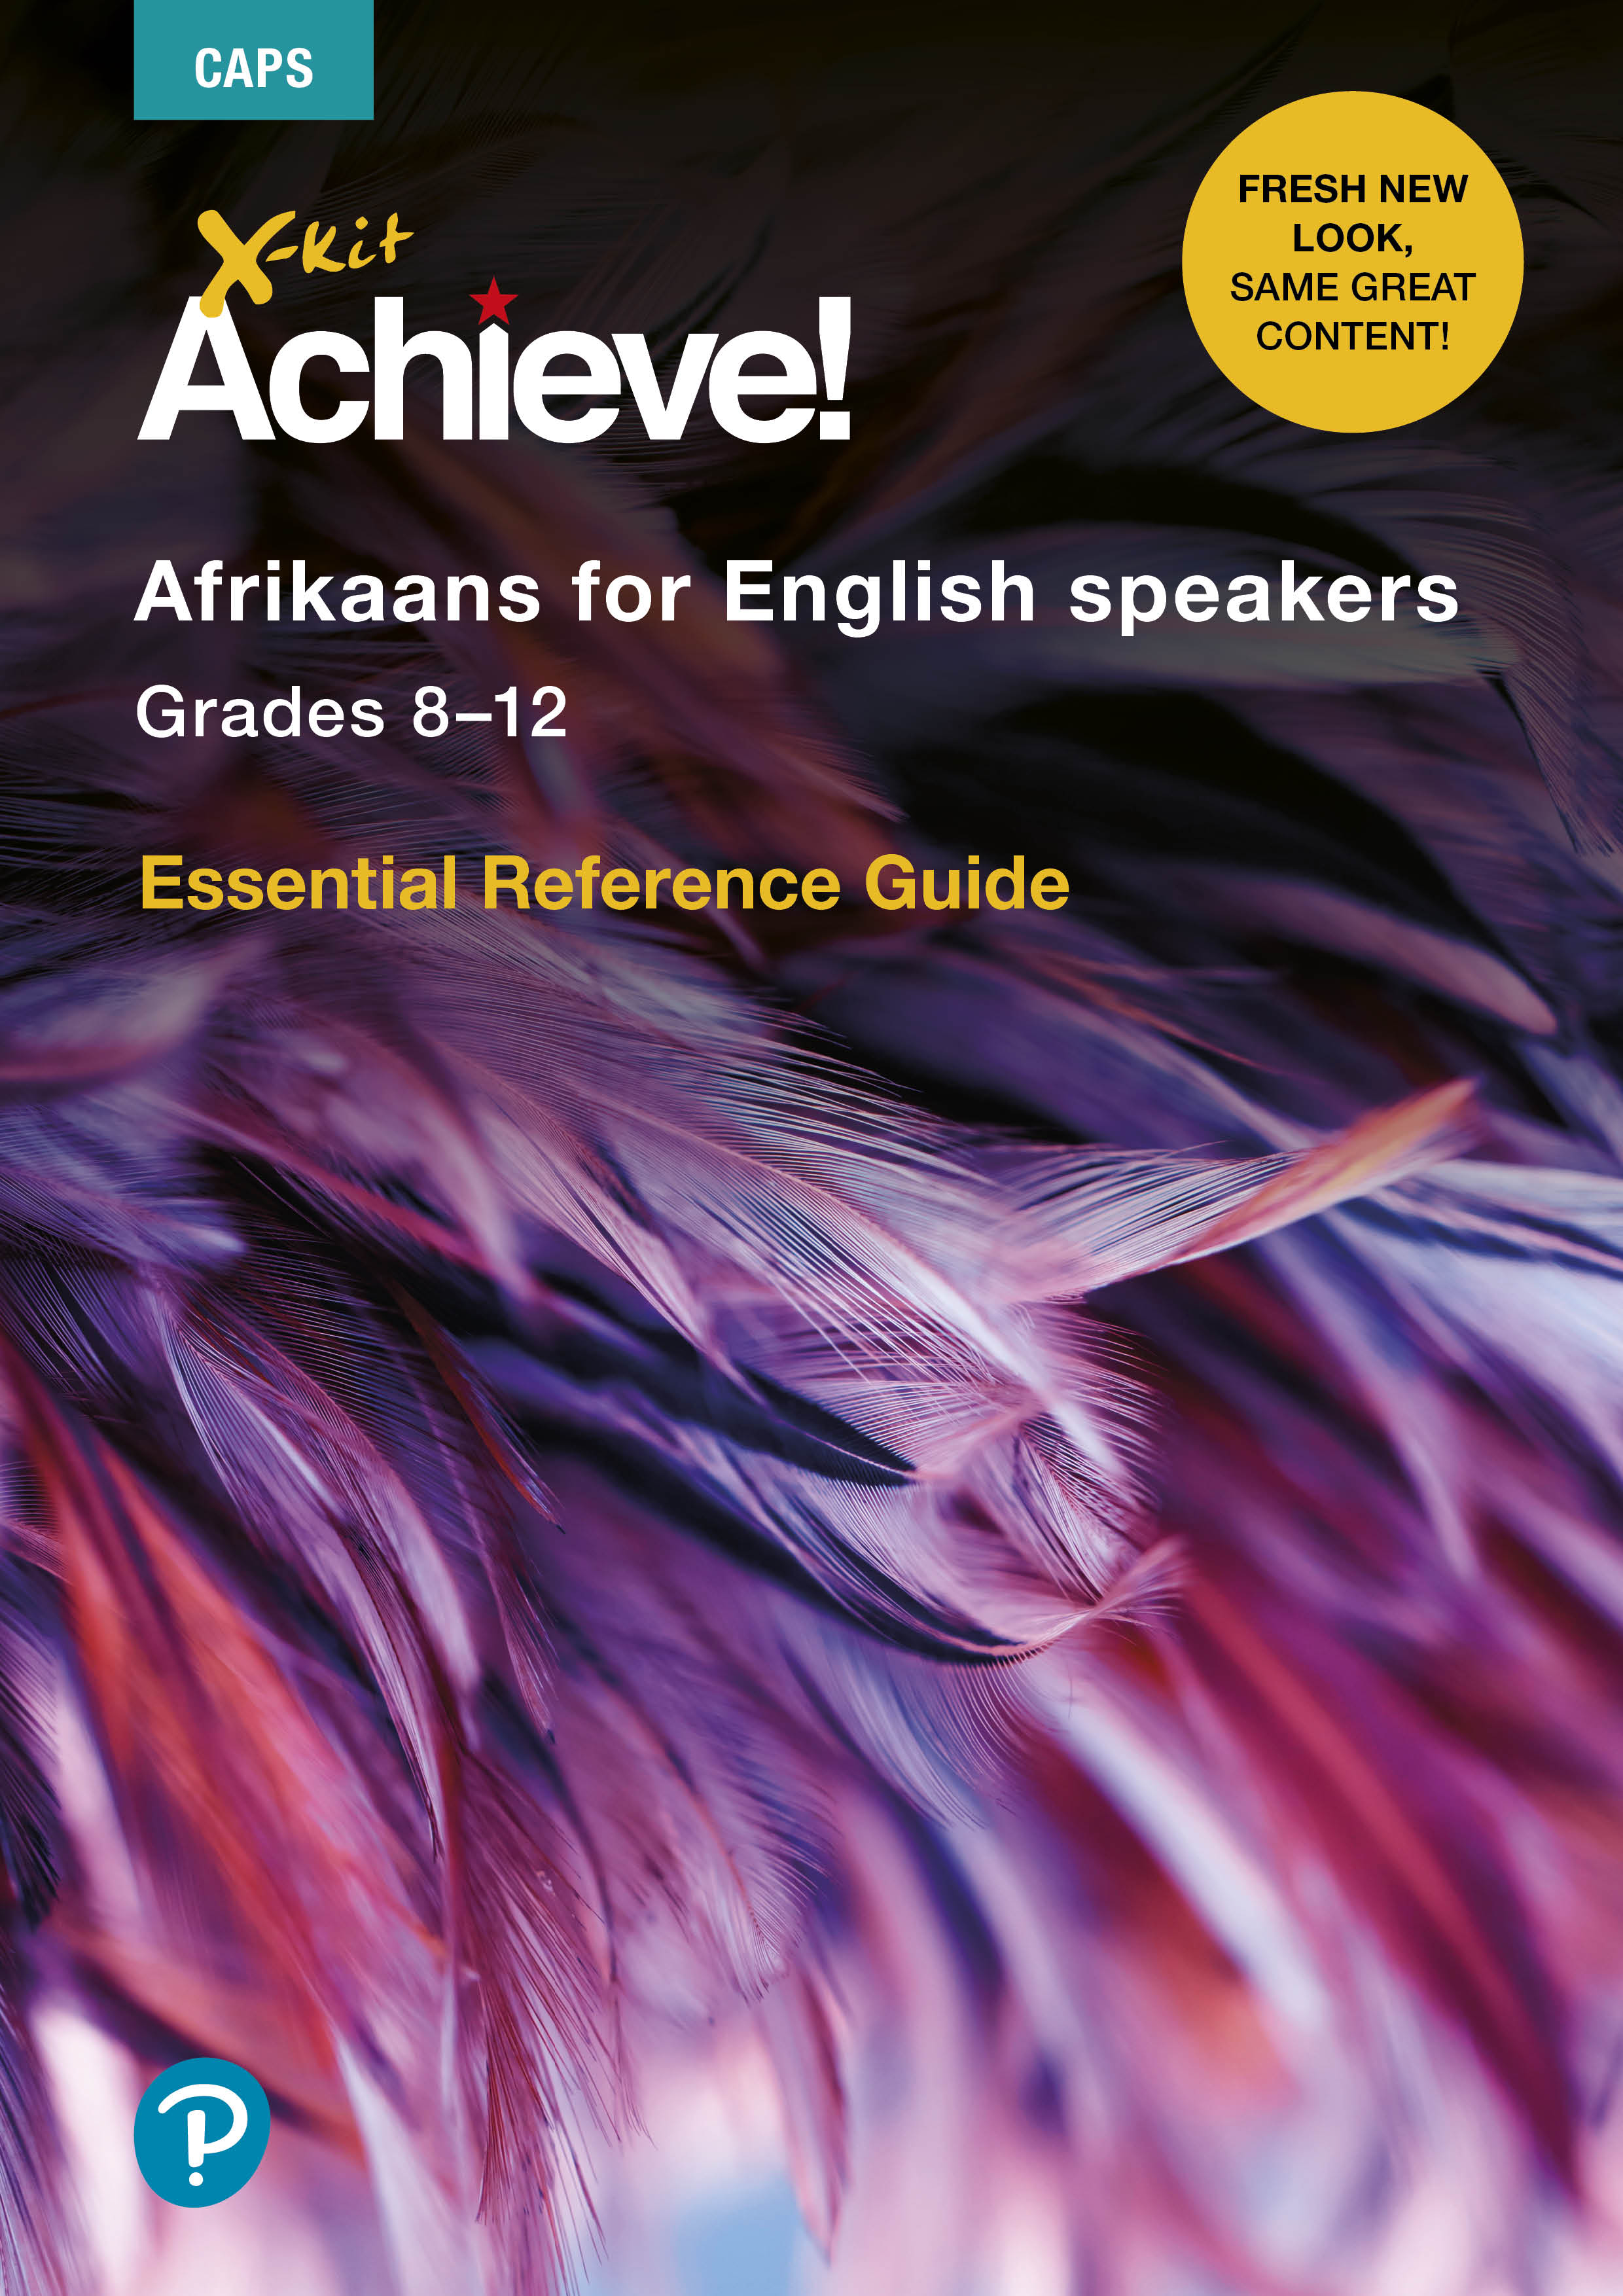 Picture of X-Kit Essensiele Gids: Afrikaans for English Speakers : Grade 8 -12 : CAPS aligned